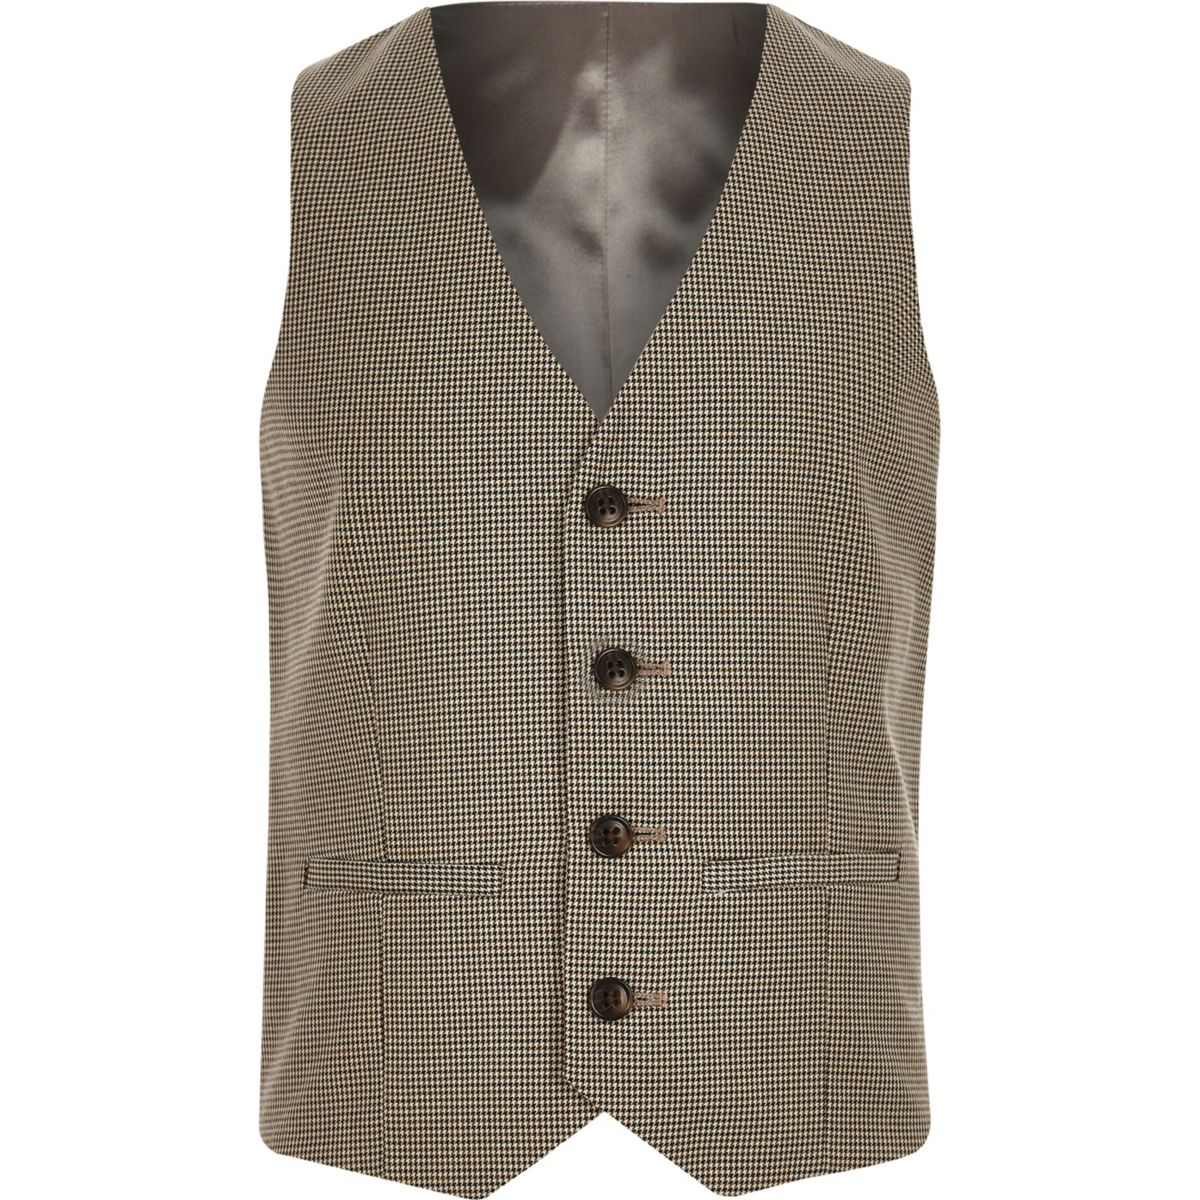 Boys brown check suit waistcoat